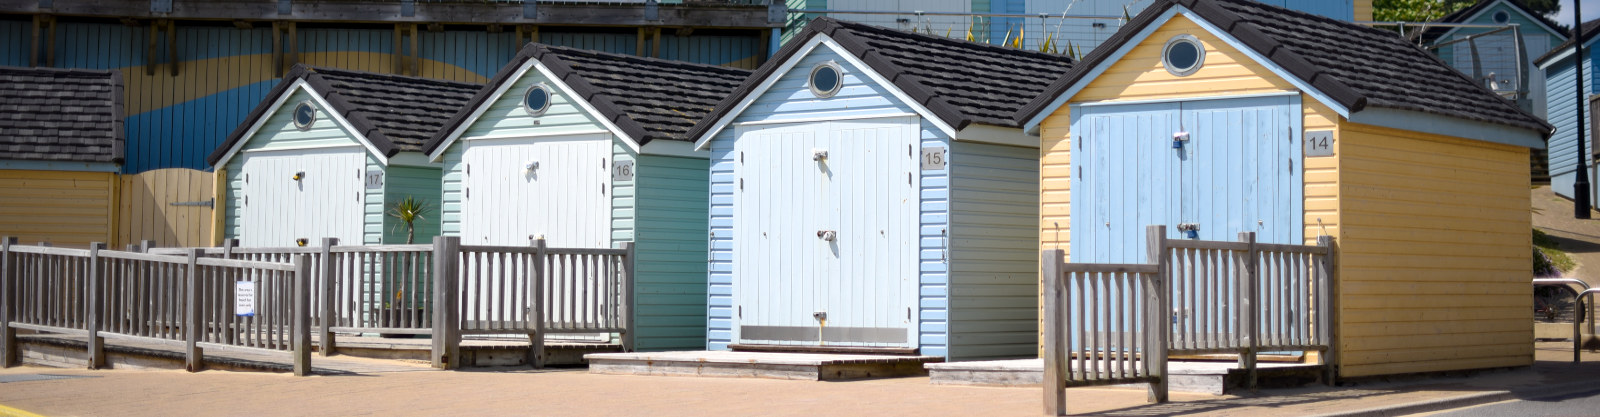 Beach Huts at the Bournemouth Beach